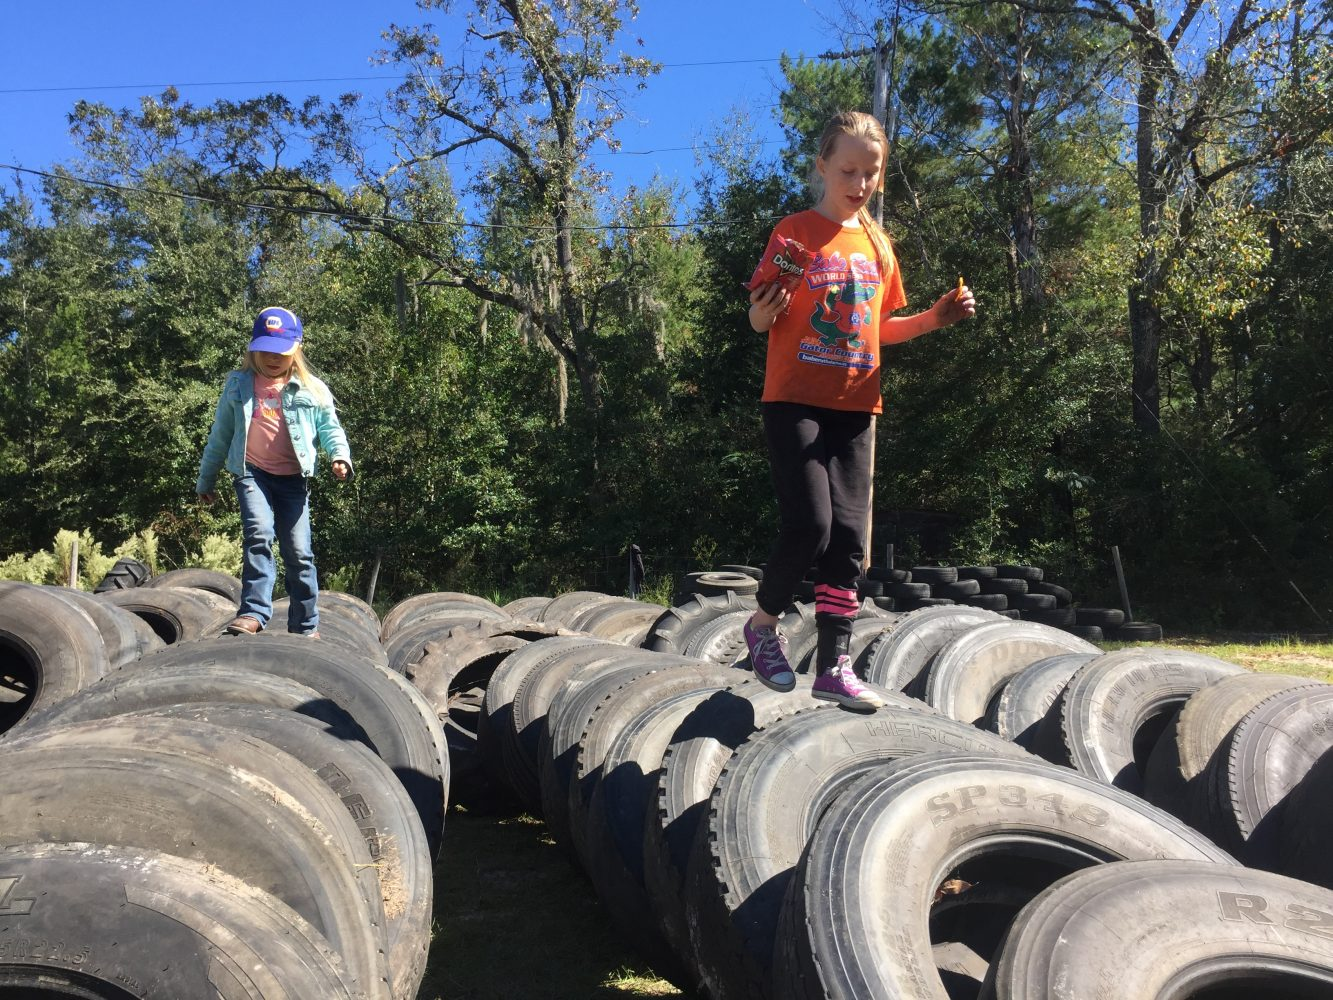 Layla, 7, (left) and 11-year-old Codi play on used tires, stacked by size. They came out with their parents to help organize the tires for Bronson's Hot Chick's Earthship Project. (Sara Girard/WUFT)